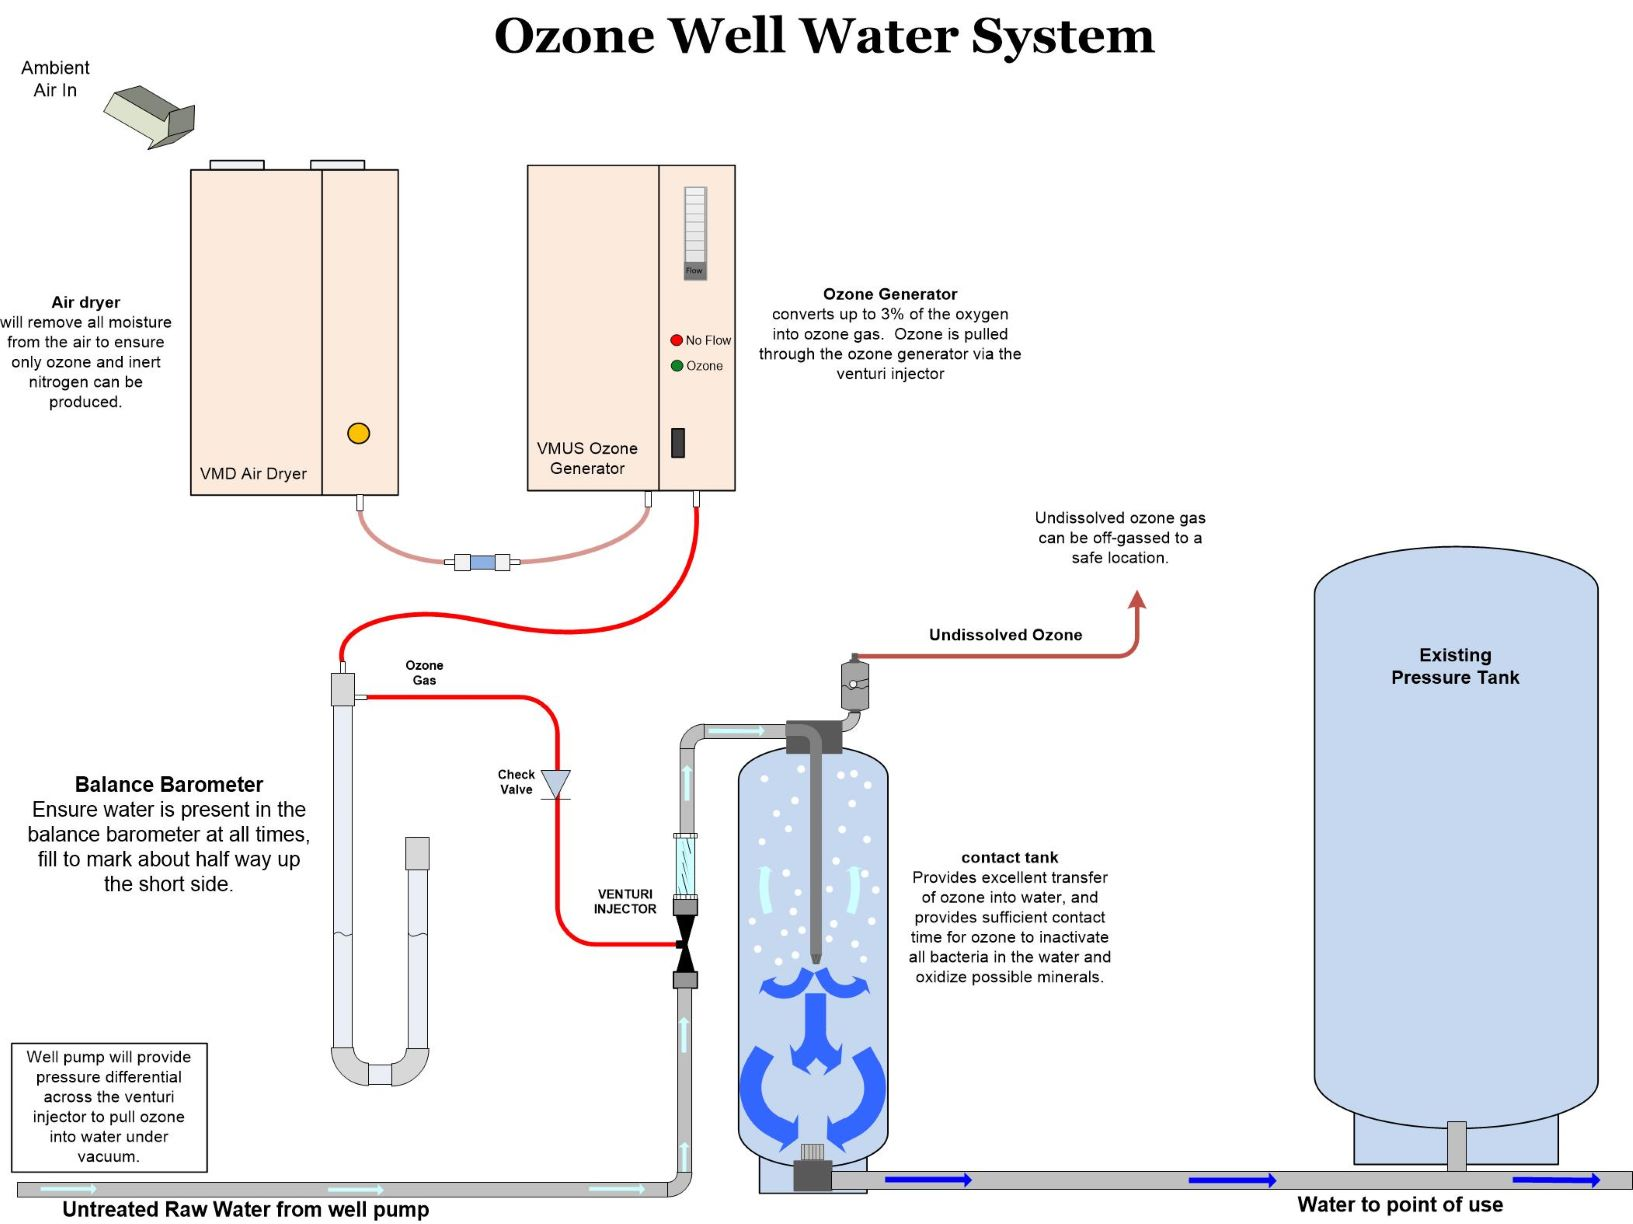 the simplest setup includes a mazzei venturi which uses the existing water  flow to pull ozone into the water stream  a small mixing tank would  increase